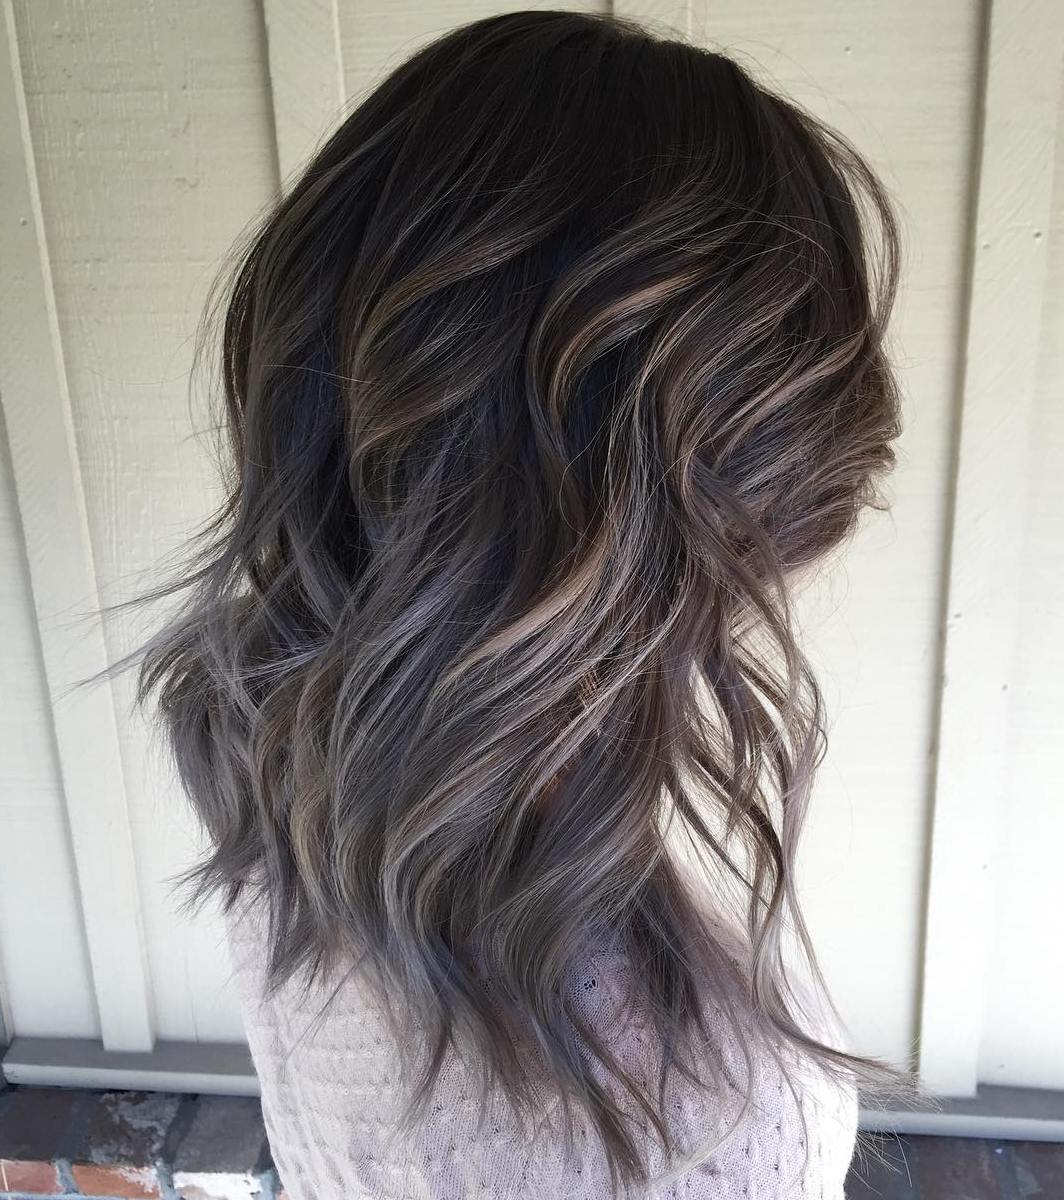 45 Ideas Of Gray And Silver Highlights On Brown Hair Inside Widely Used Long Choppy Haircuts With A Sprinkling Of Layers (View 8 of 20)